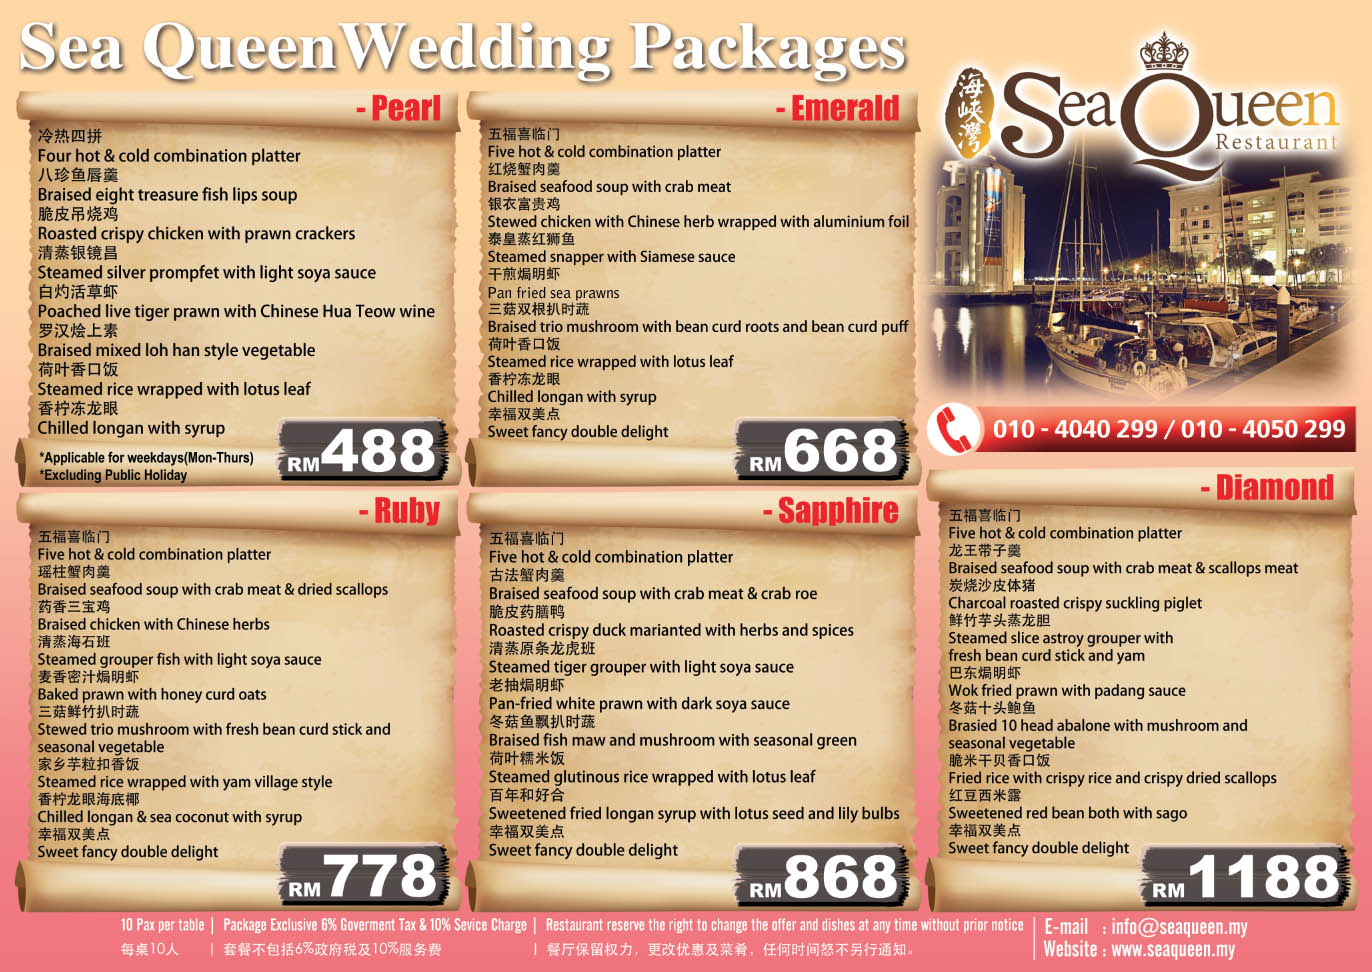 Here Is The Wedding Packages Menu By Sea Queen Restaurant They Are Open To Adjustments Catered You Needs And A Few Halls Which Could Cater Various